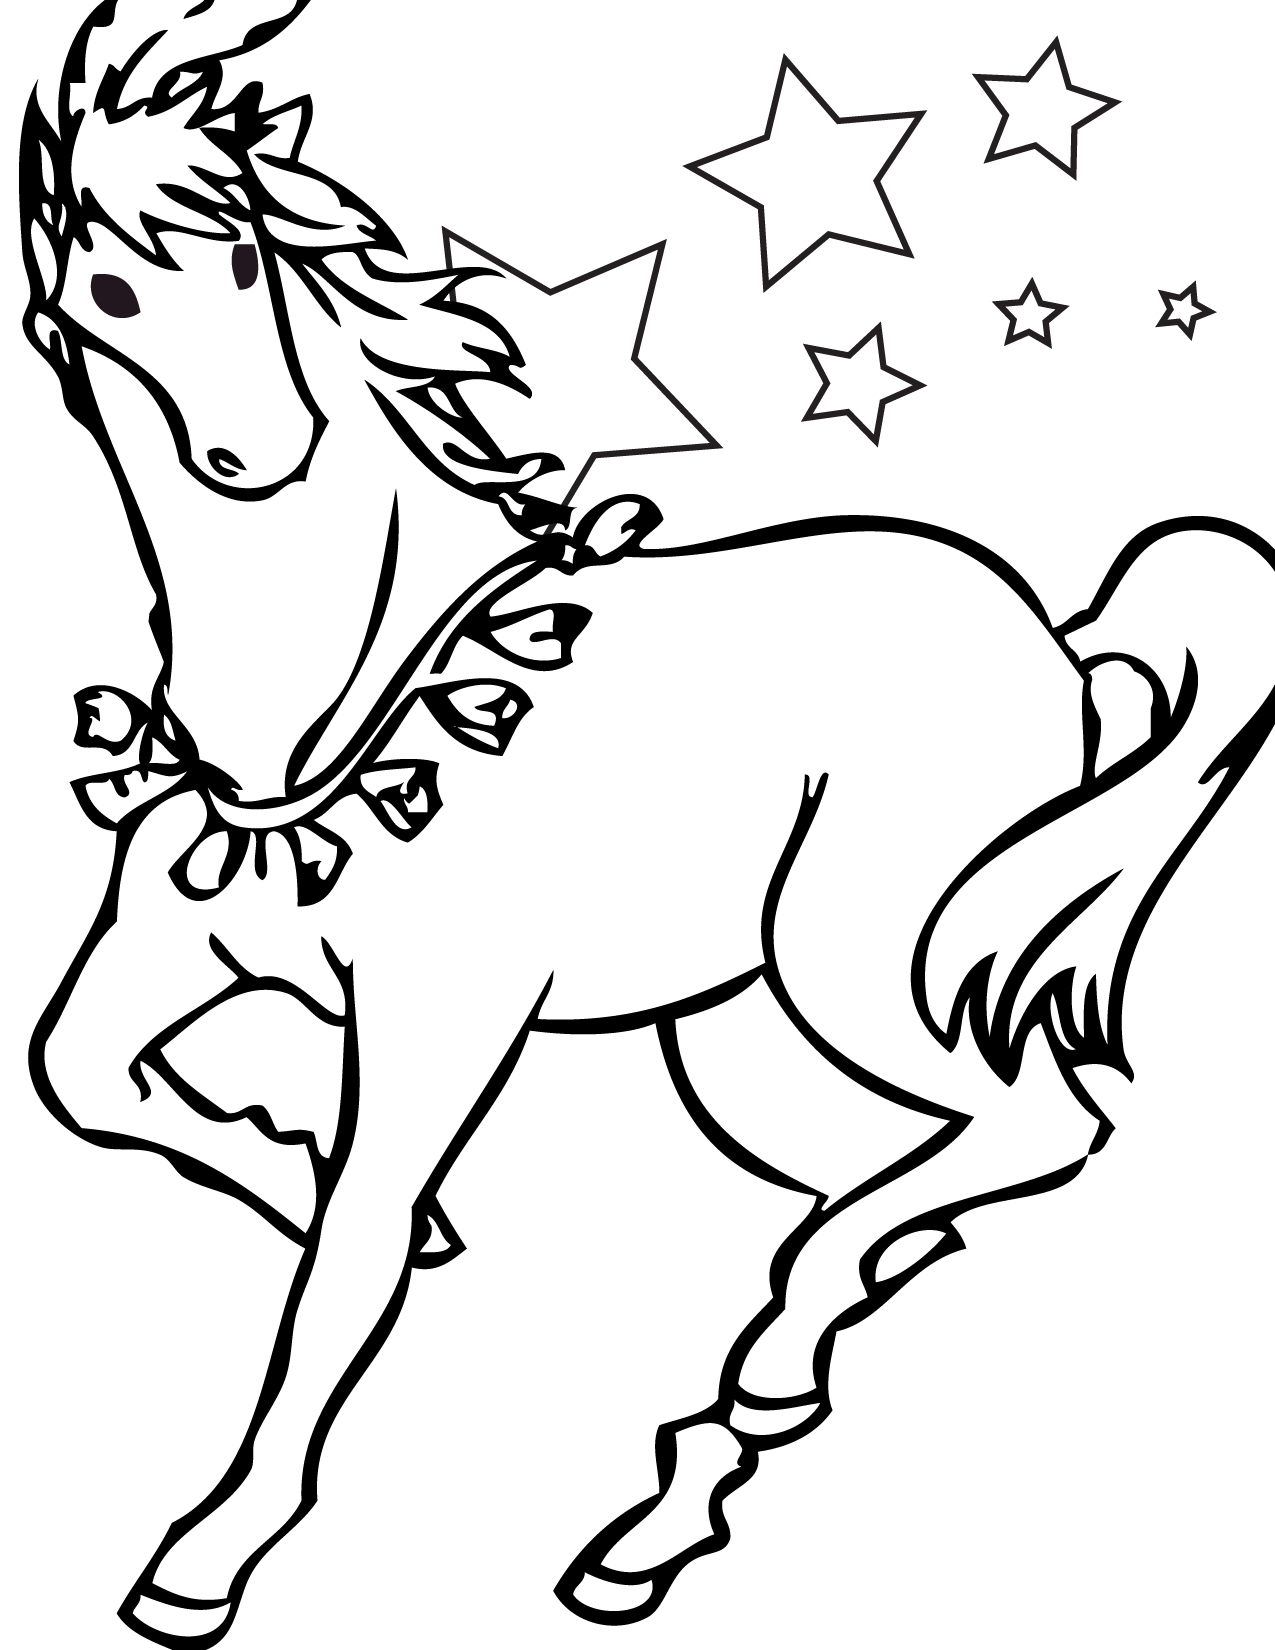 horse head coloring pages printable - photo#27